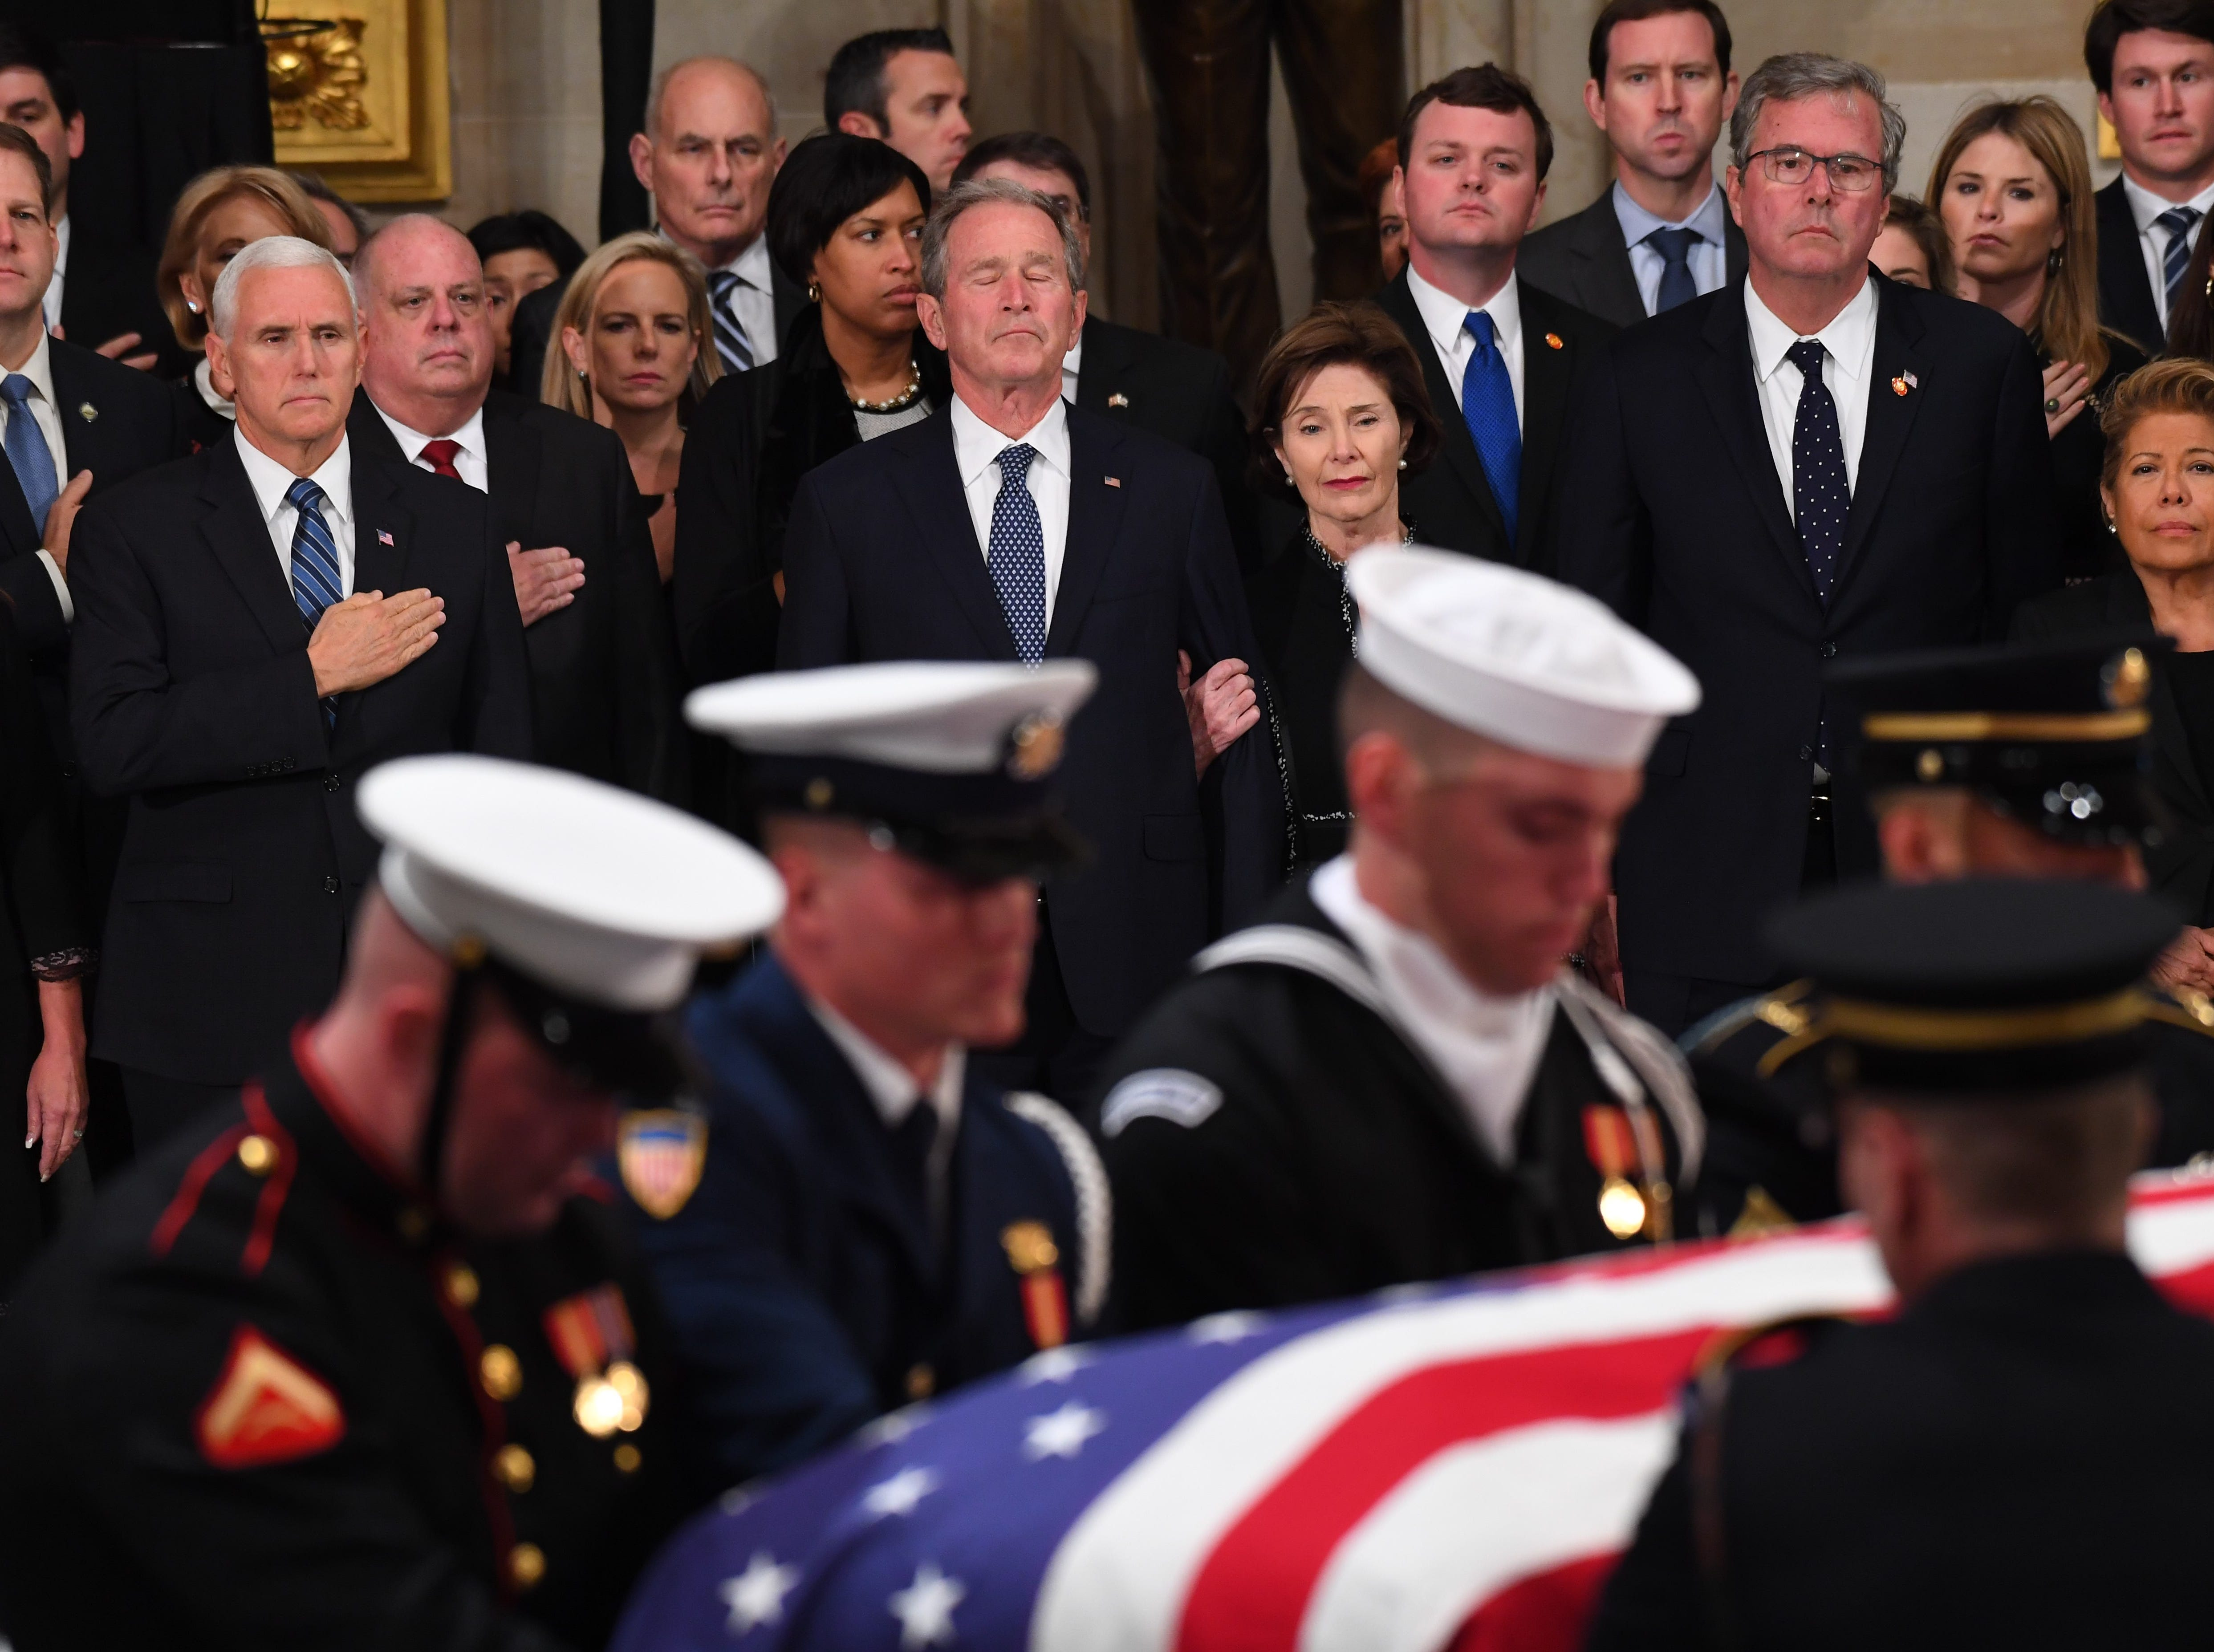 Members of the Bush family, including President George W. Bush as the casket containing President George H.W. Bush is brought to lie in state at the U.S. Capitol Rotunda.